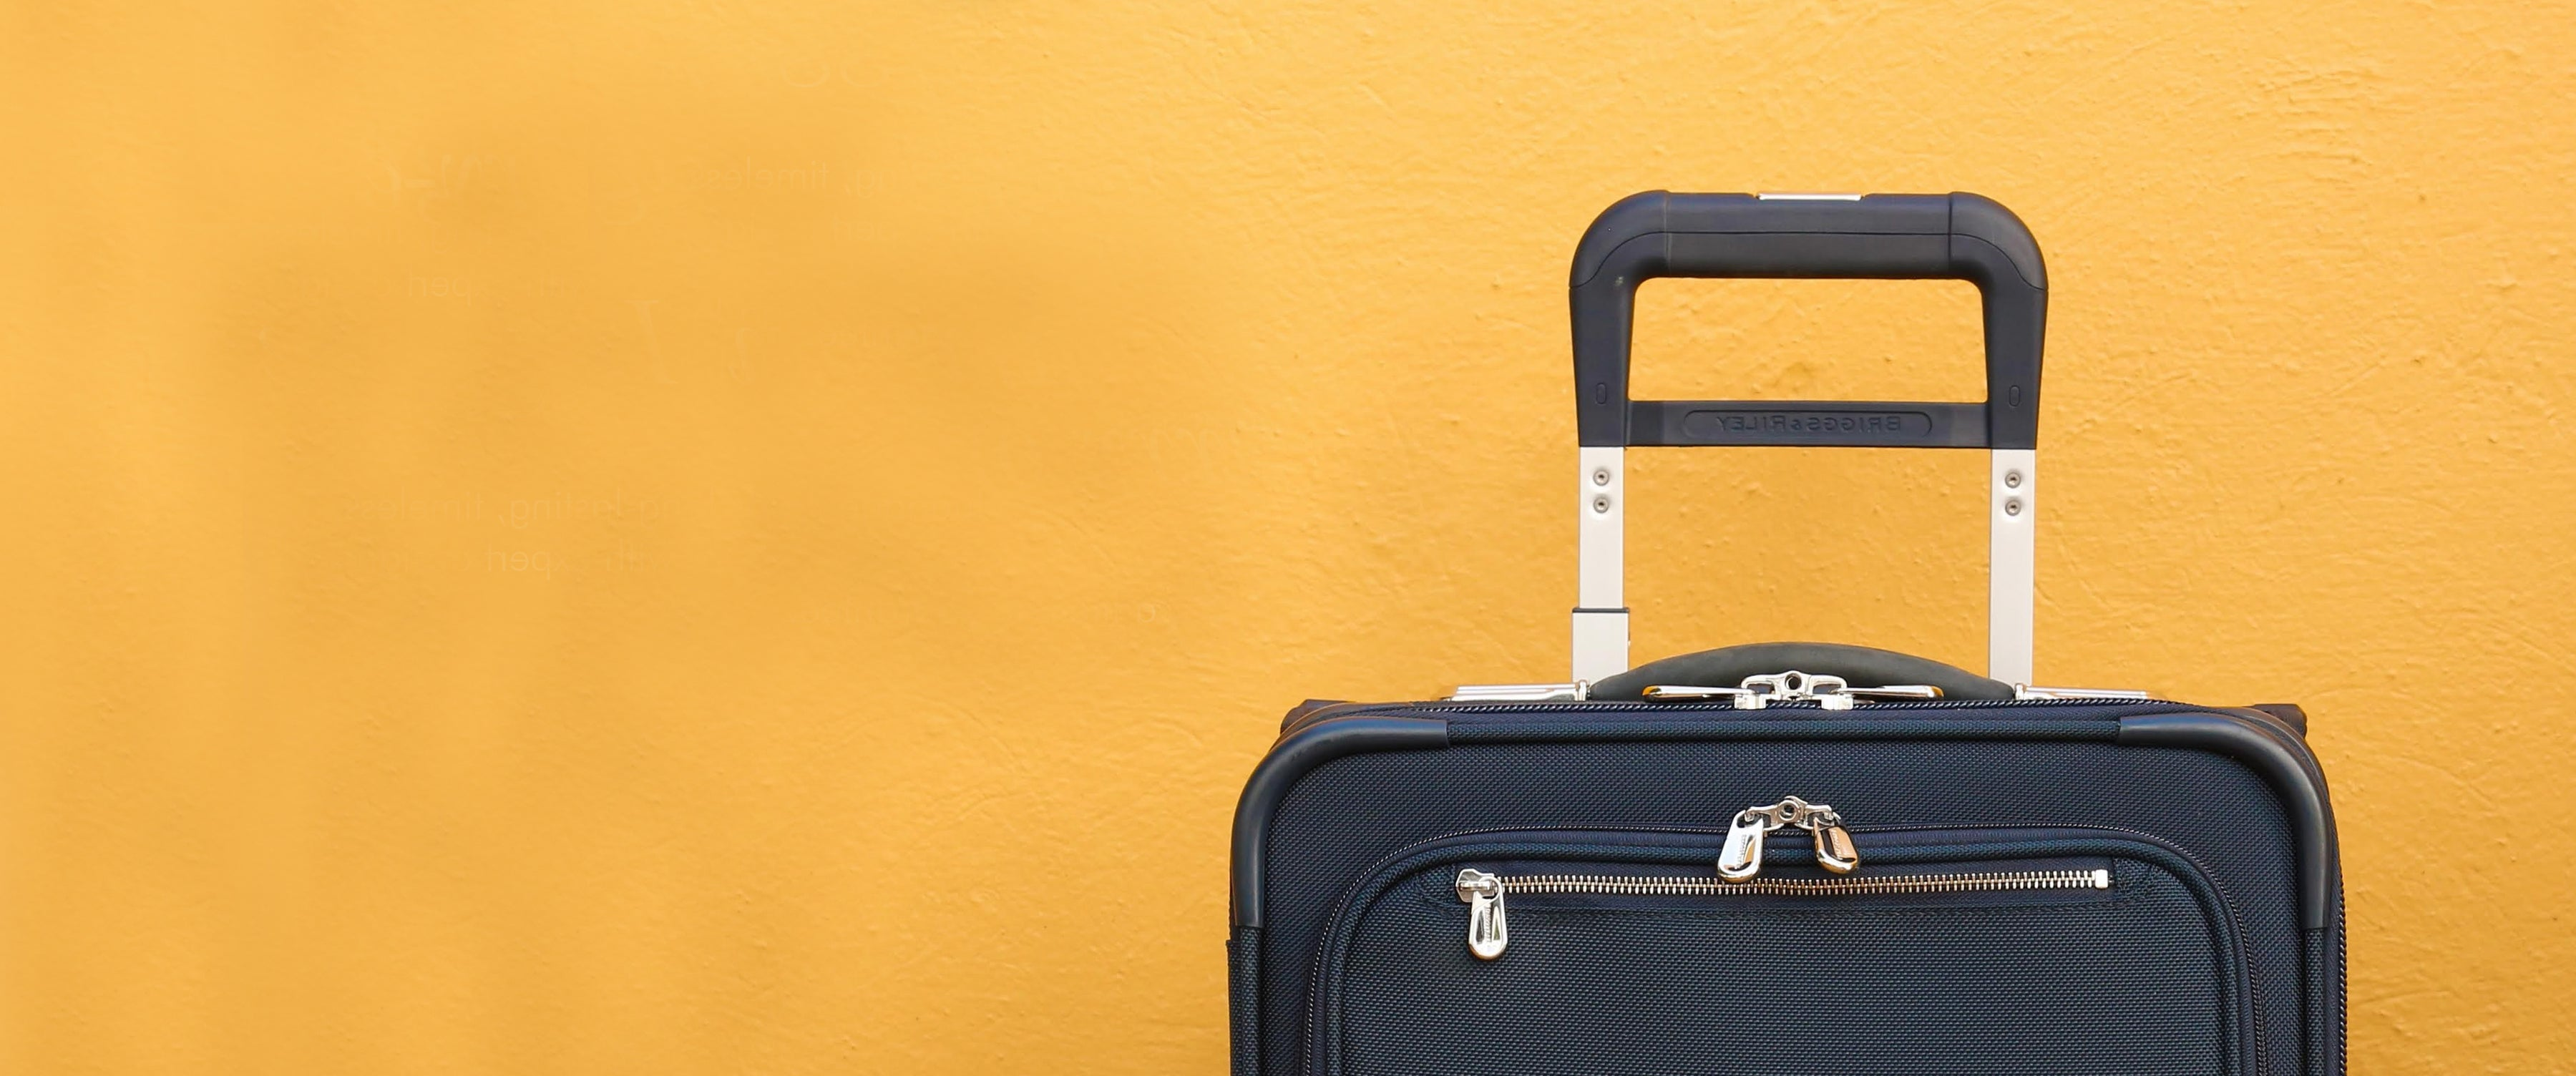 Carry-On Carry-on Luggage  Carry-on luggage that's long-lasting, timeless,  and makes travel a breeze with expert design and  a lifetime guarantee.